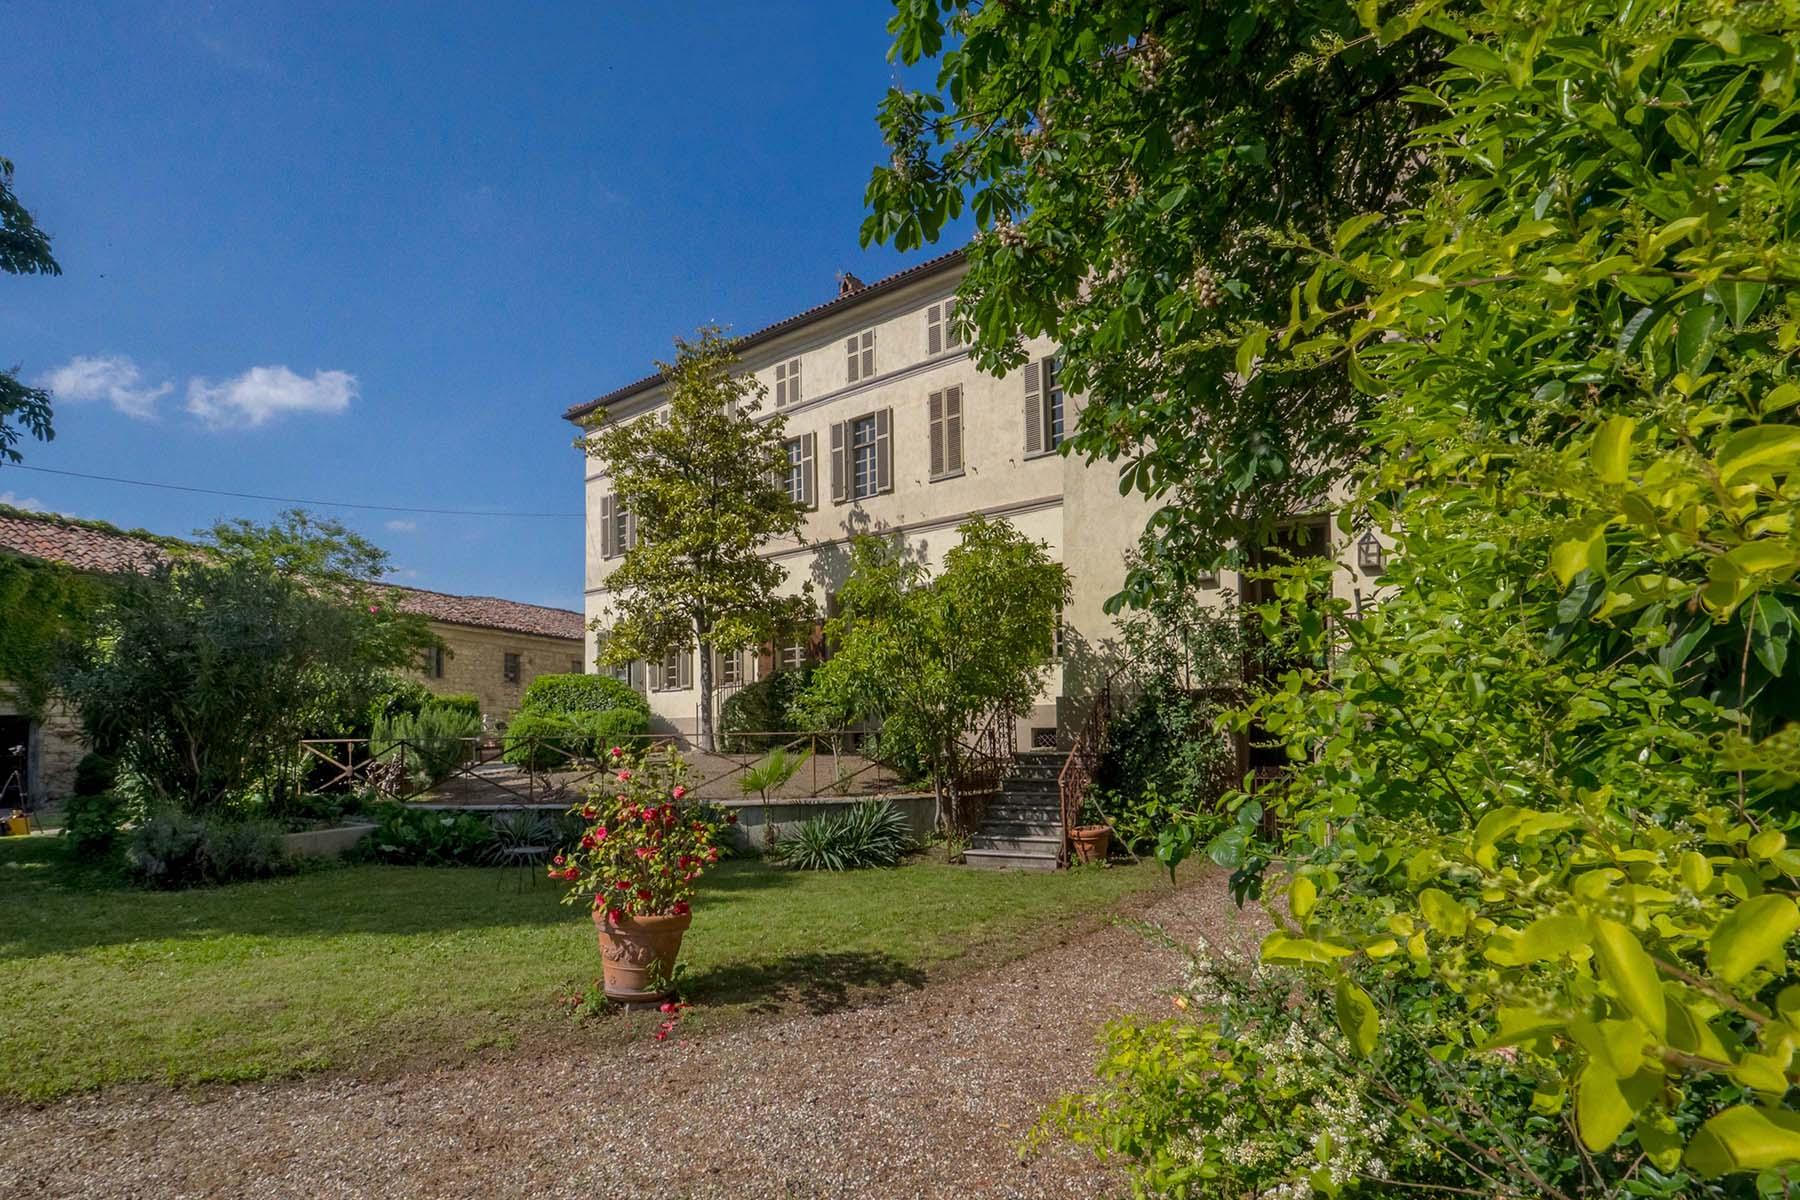 Enchanting historical villa in the heart of the Monferrato region - 28